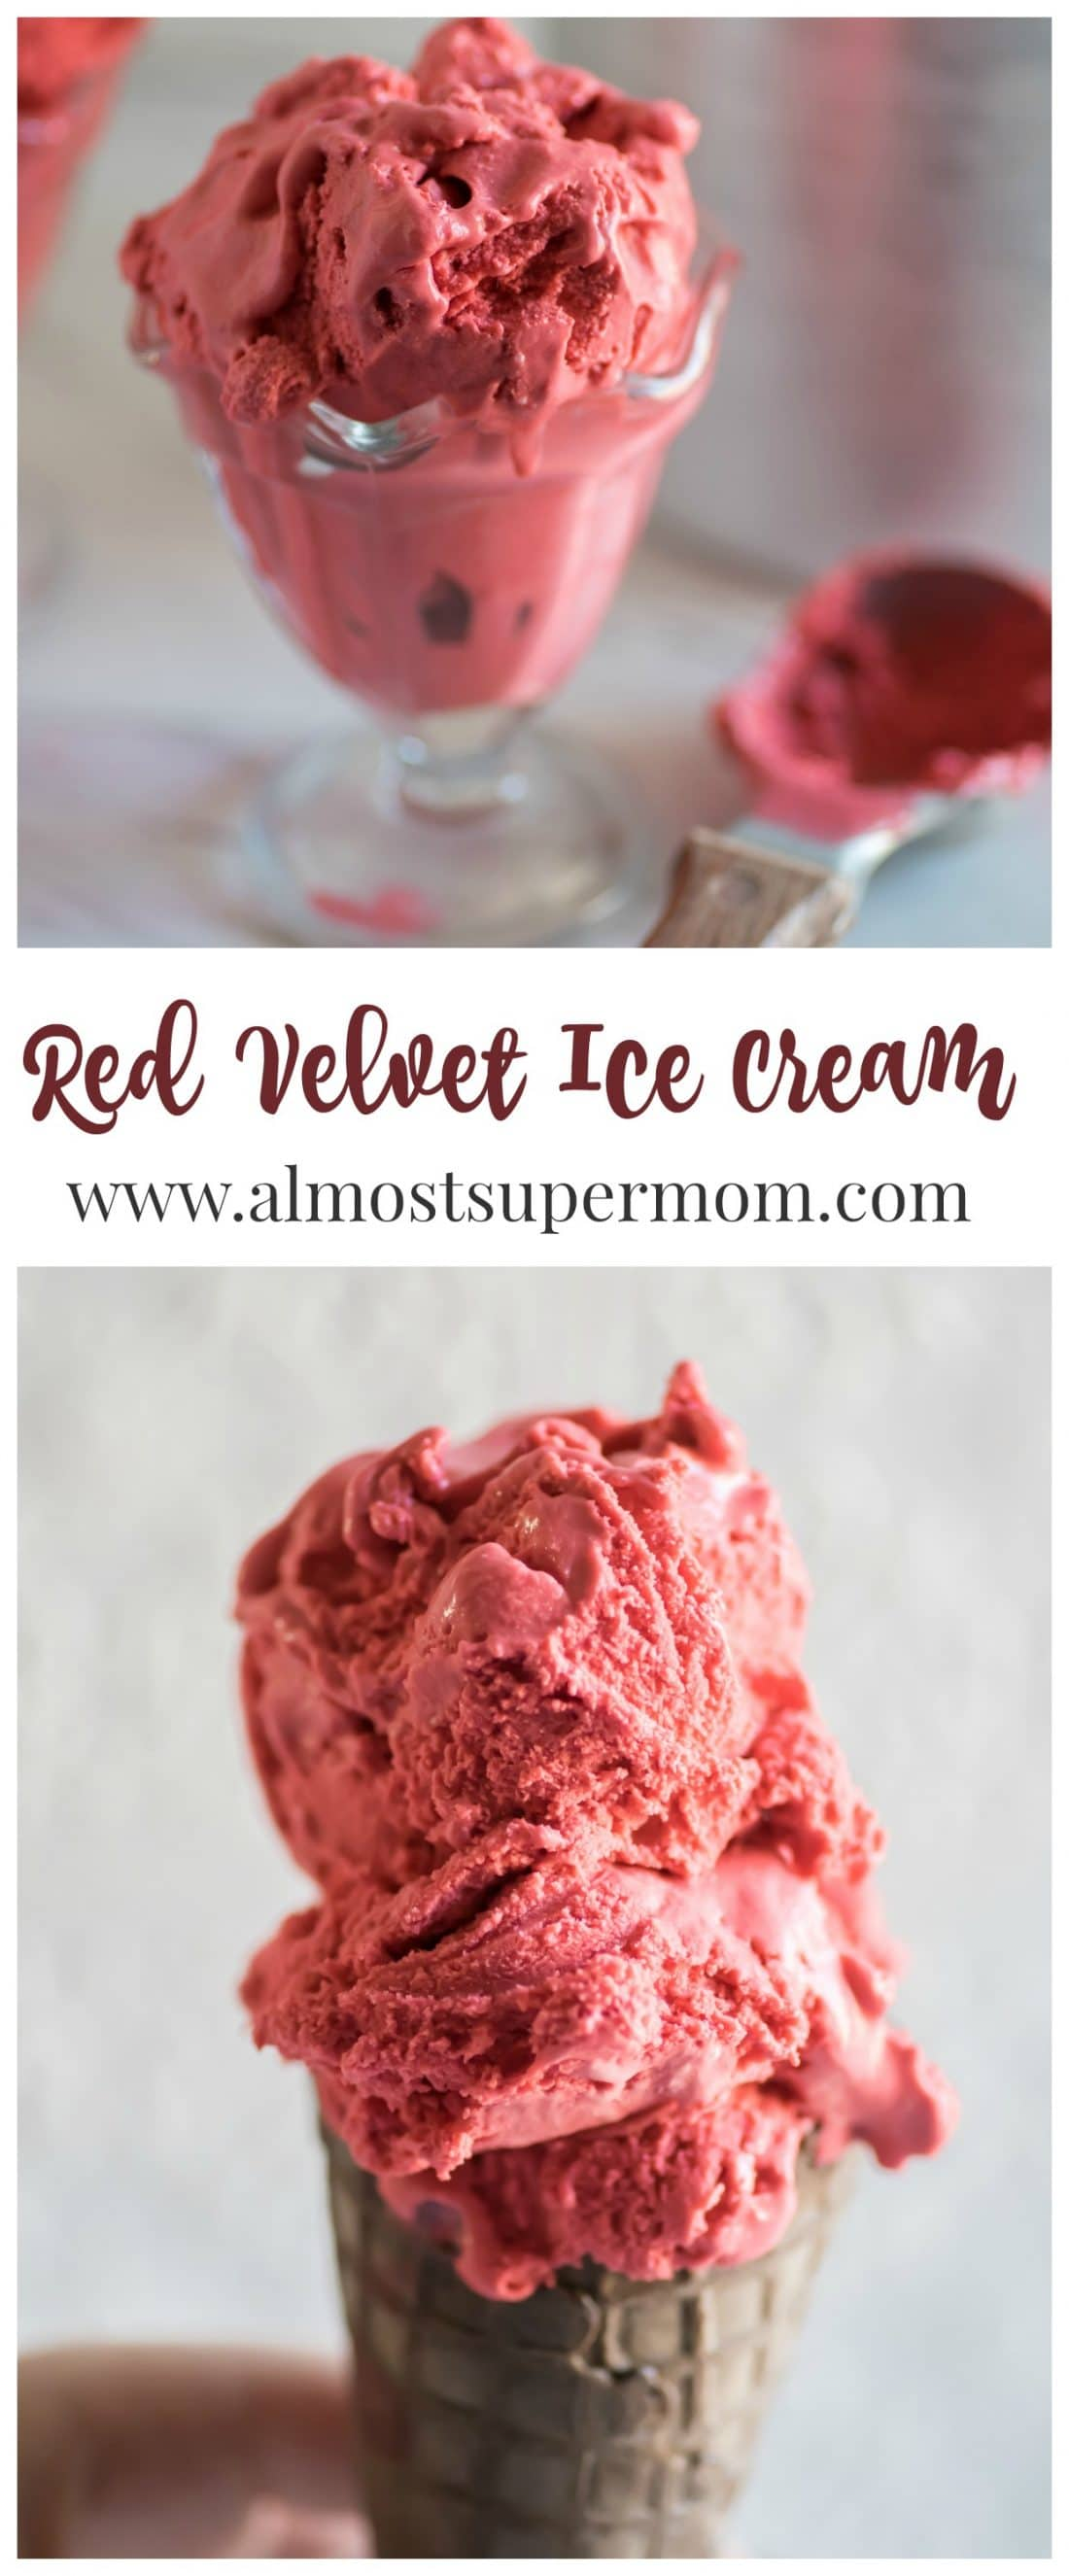 Red Velvet Ice Cream. Creamy, dreamy and delicious. This ice cream recipe is the perfect indulgent treat.